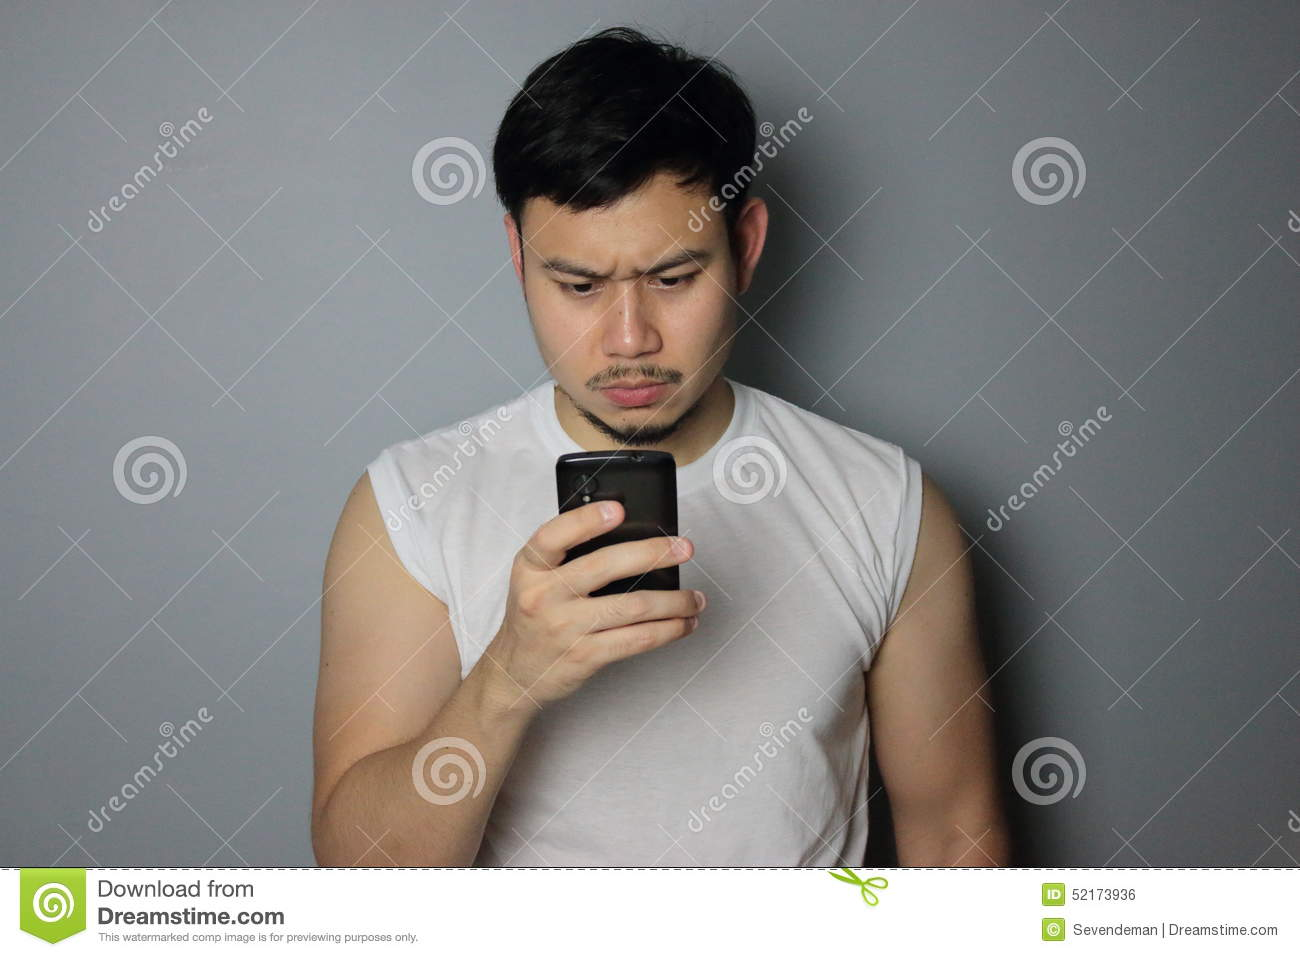 A man is looking on the mobile phone.